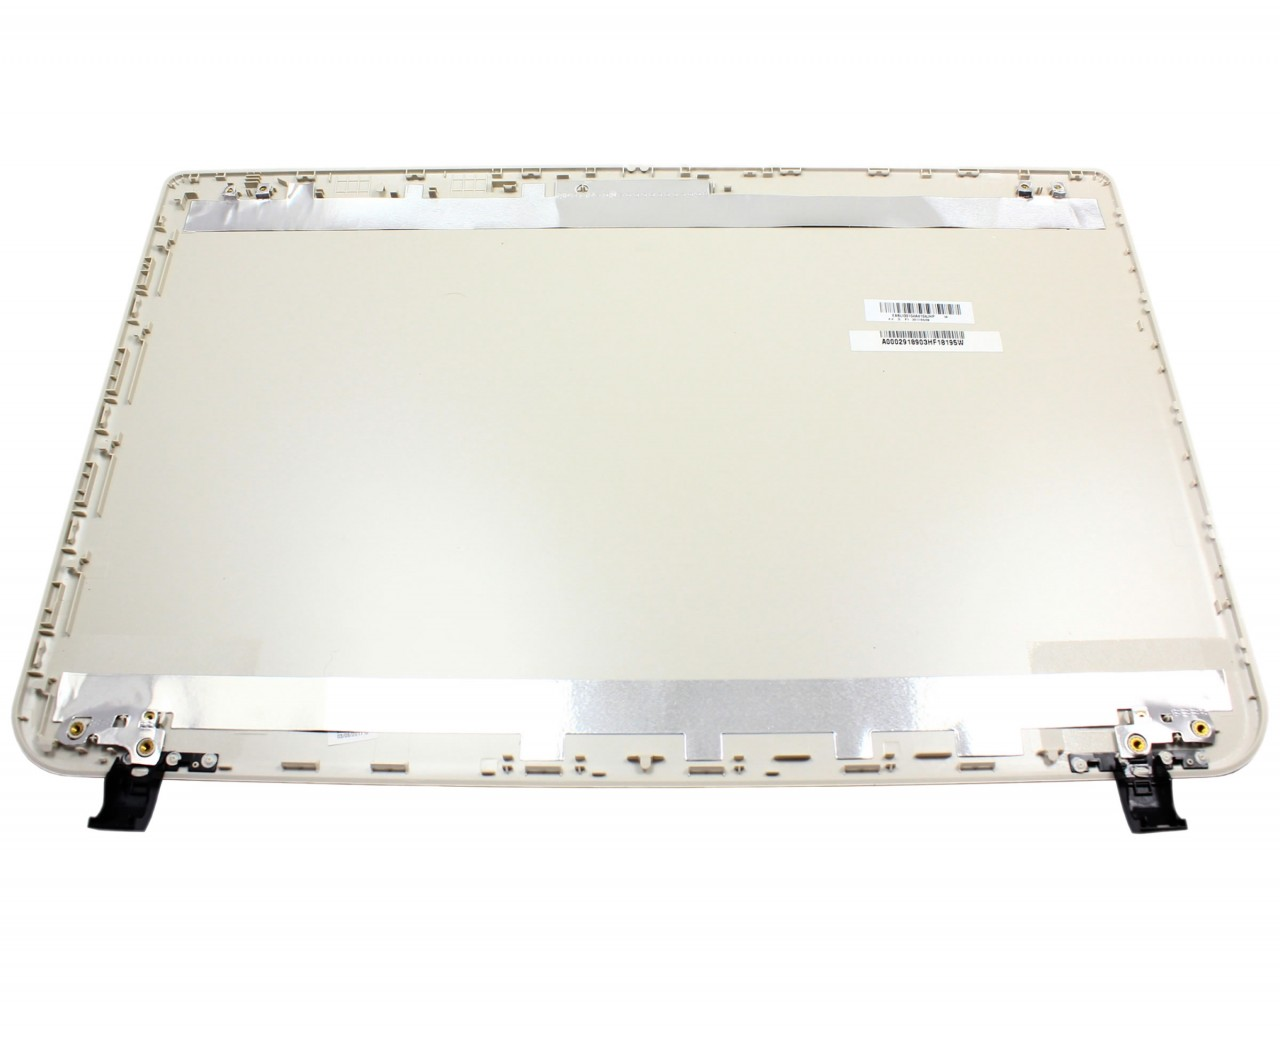 Capac Display BackCover Toshiba Satellite L55D B Carcasa Display Argintie imagine powerlaptop.ro 2021